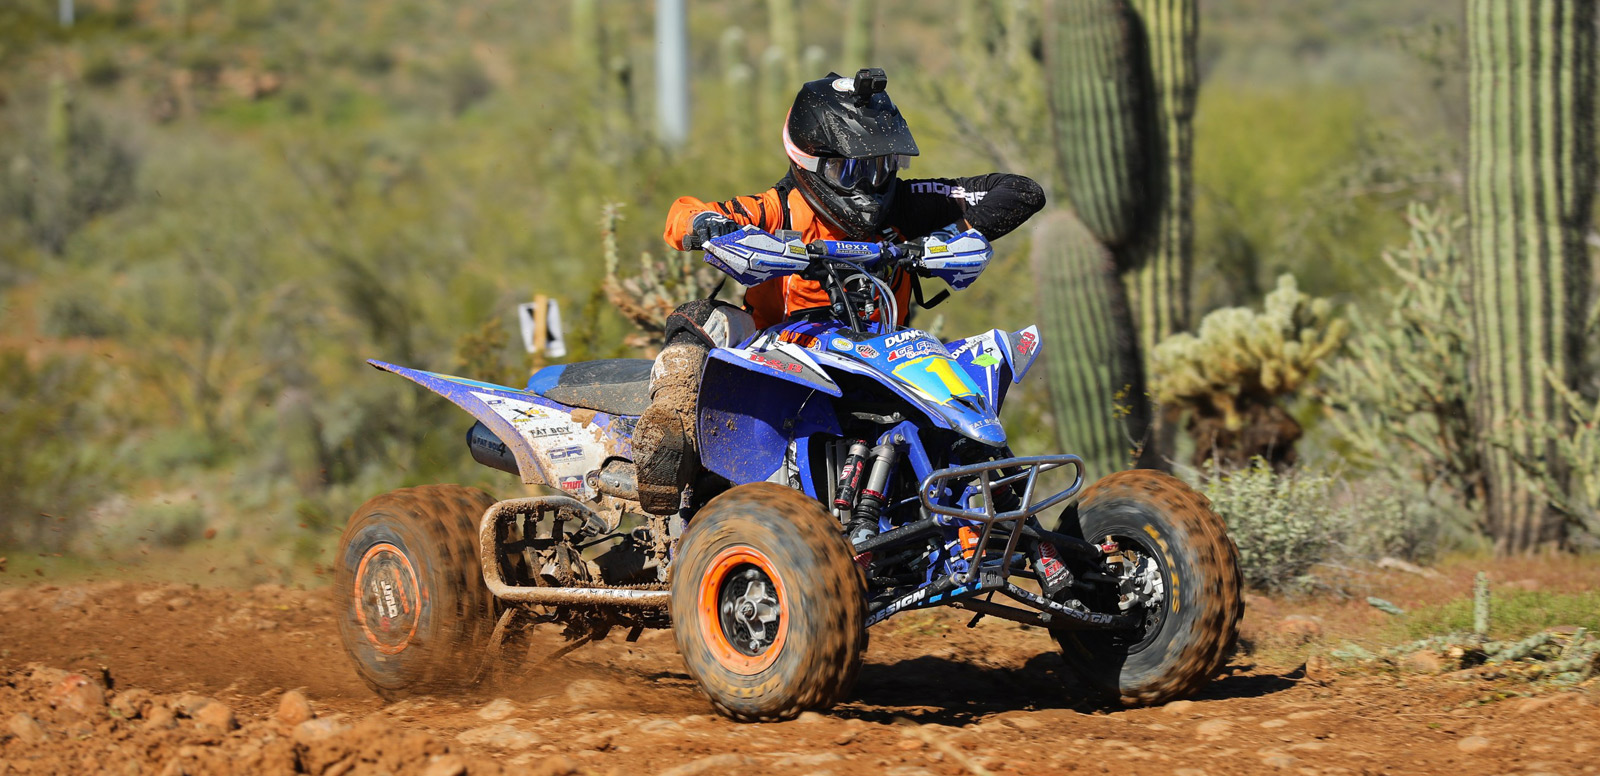 2019-03-mike-sloan-atv-worcs-racing